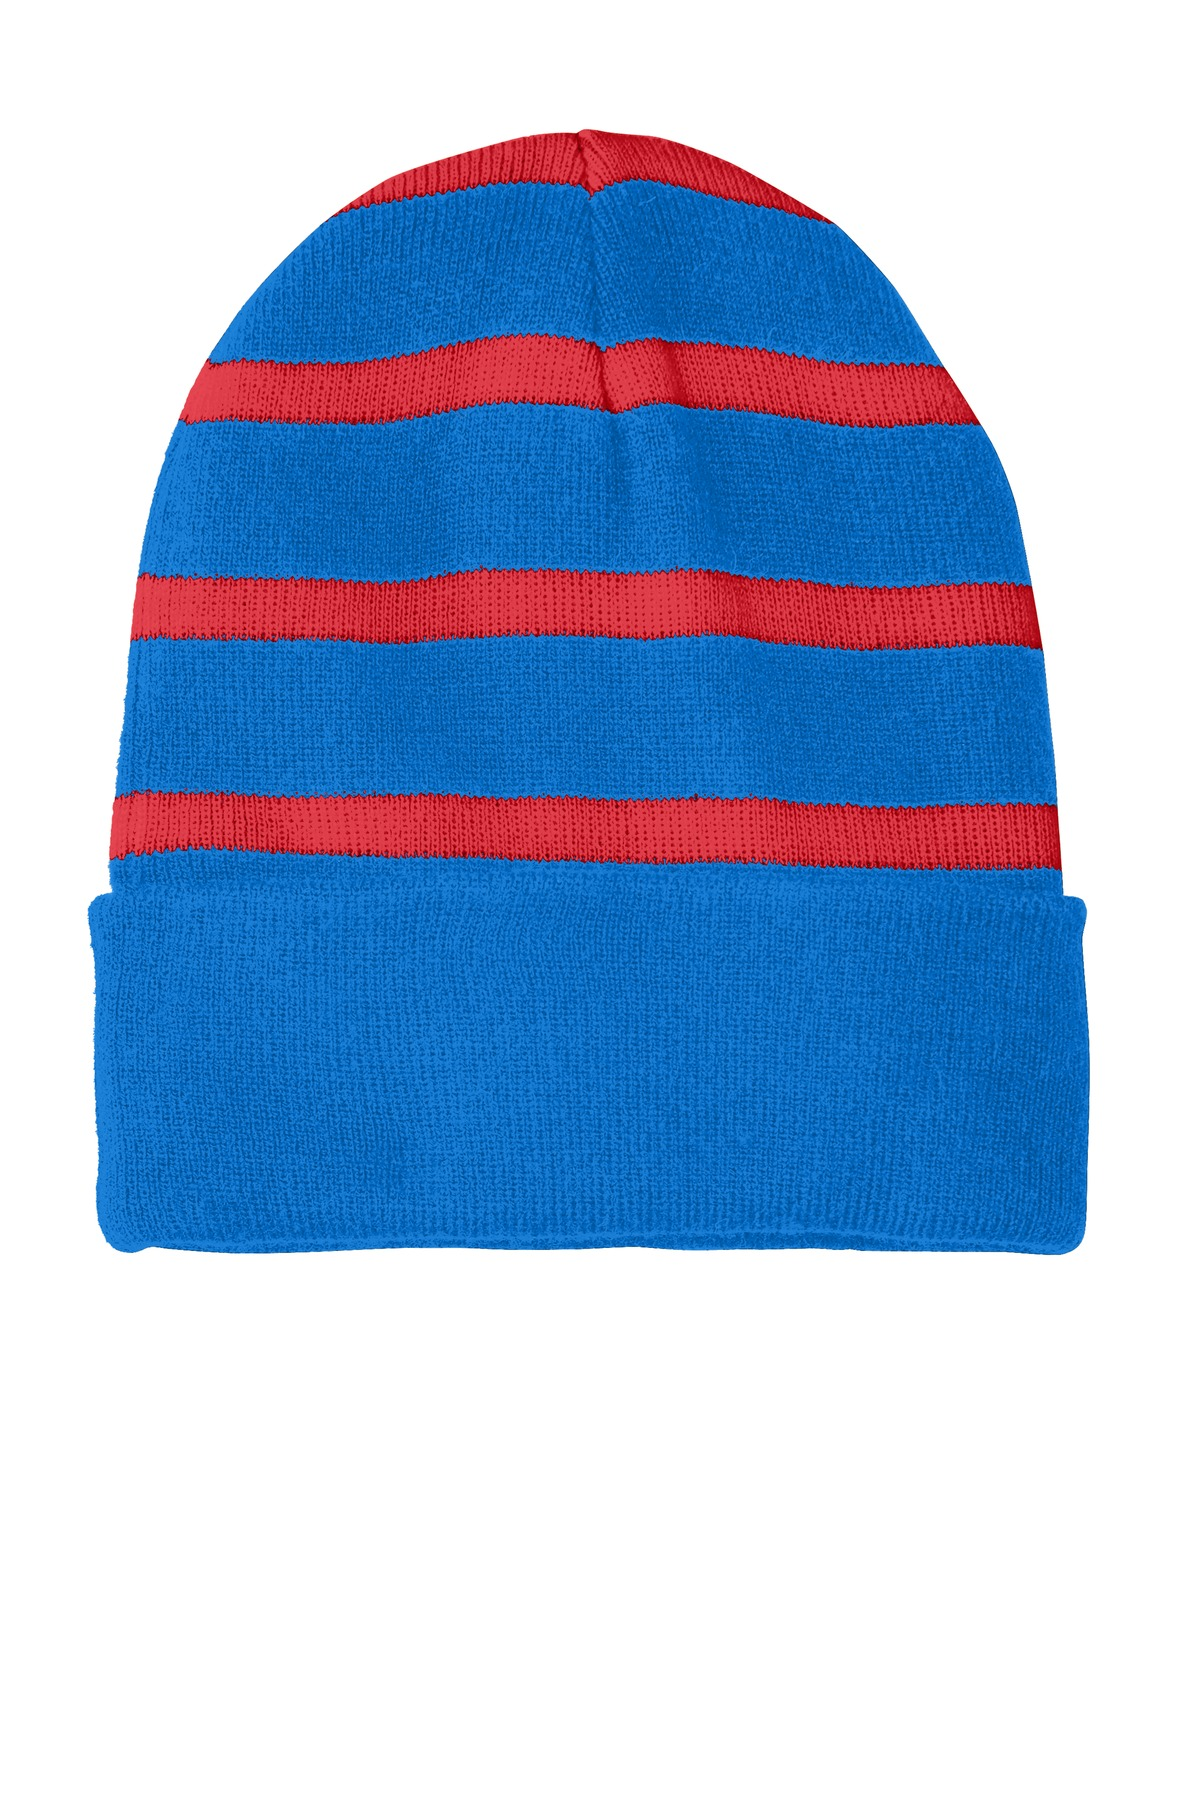 Sport-Tek ®  Striped Beanie with Solid Band. STC31 - Sport Blue/ True Red